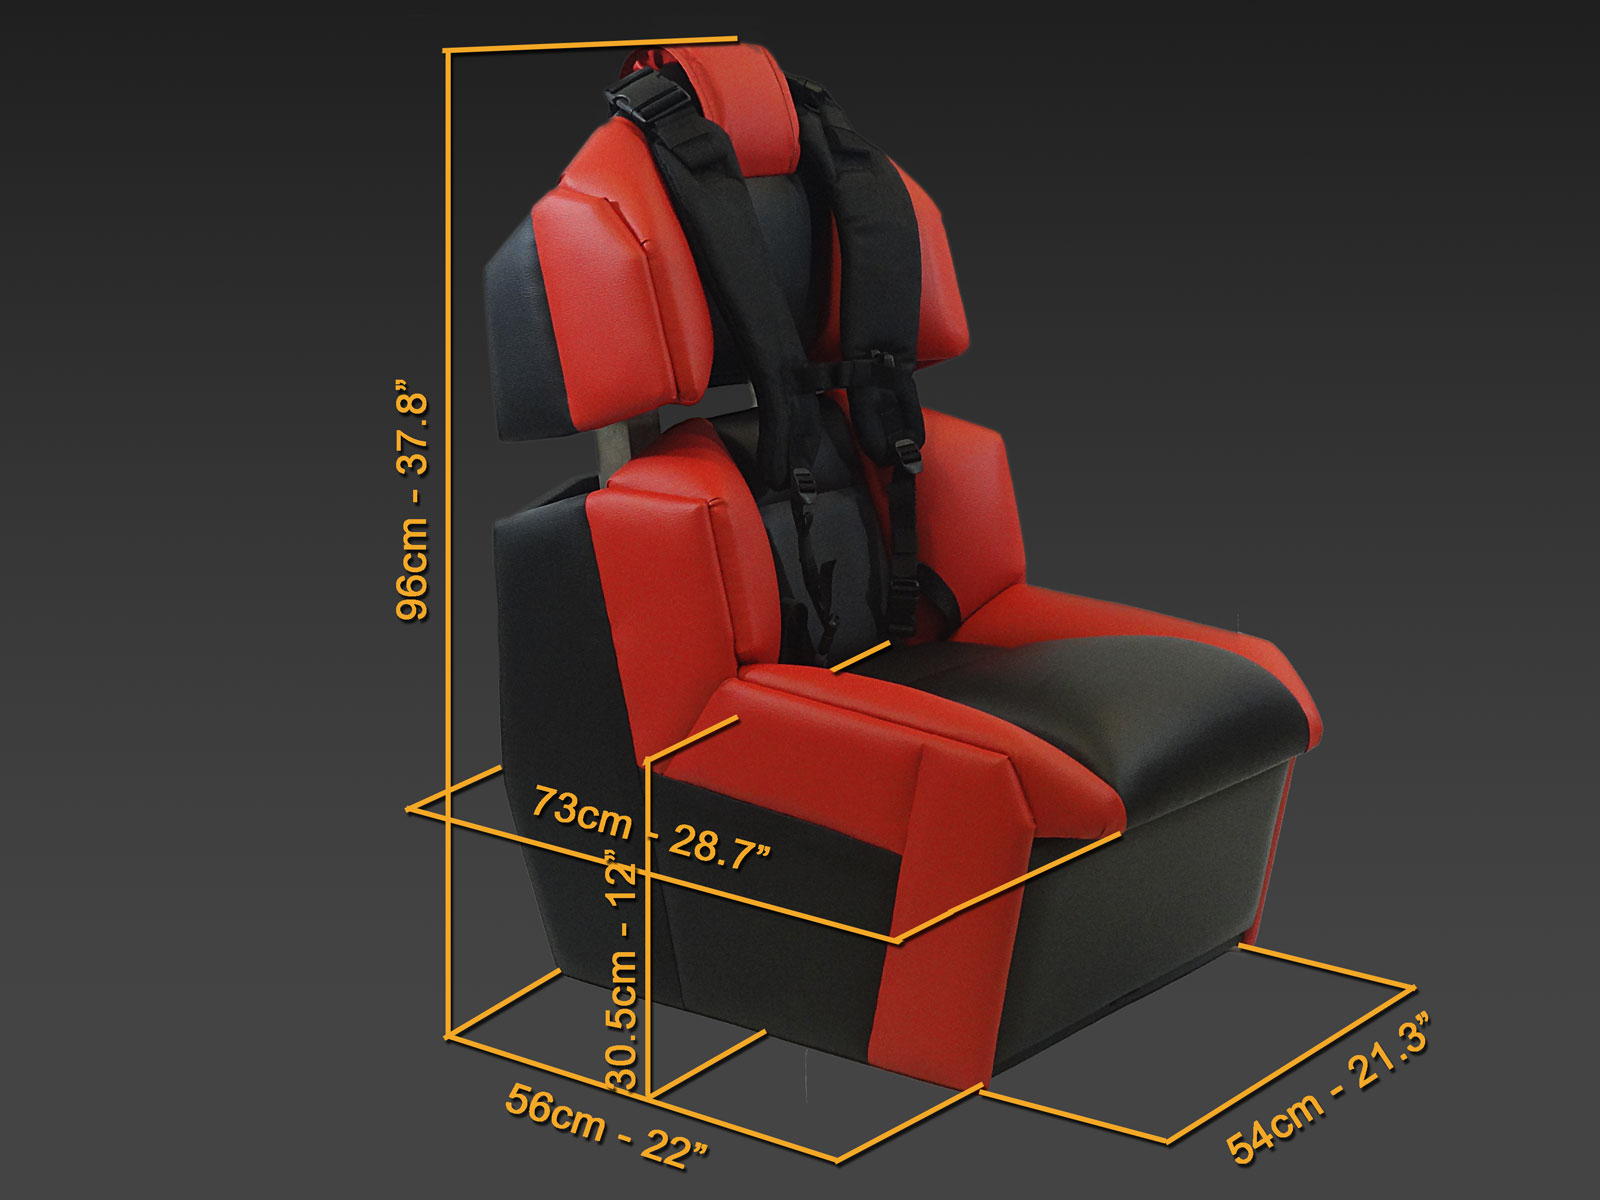 GS-Cobra motion simulator, view with dimensions in cm and inches